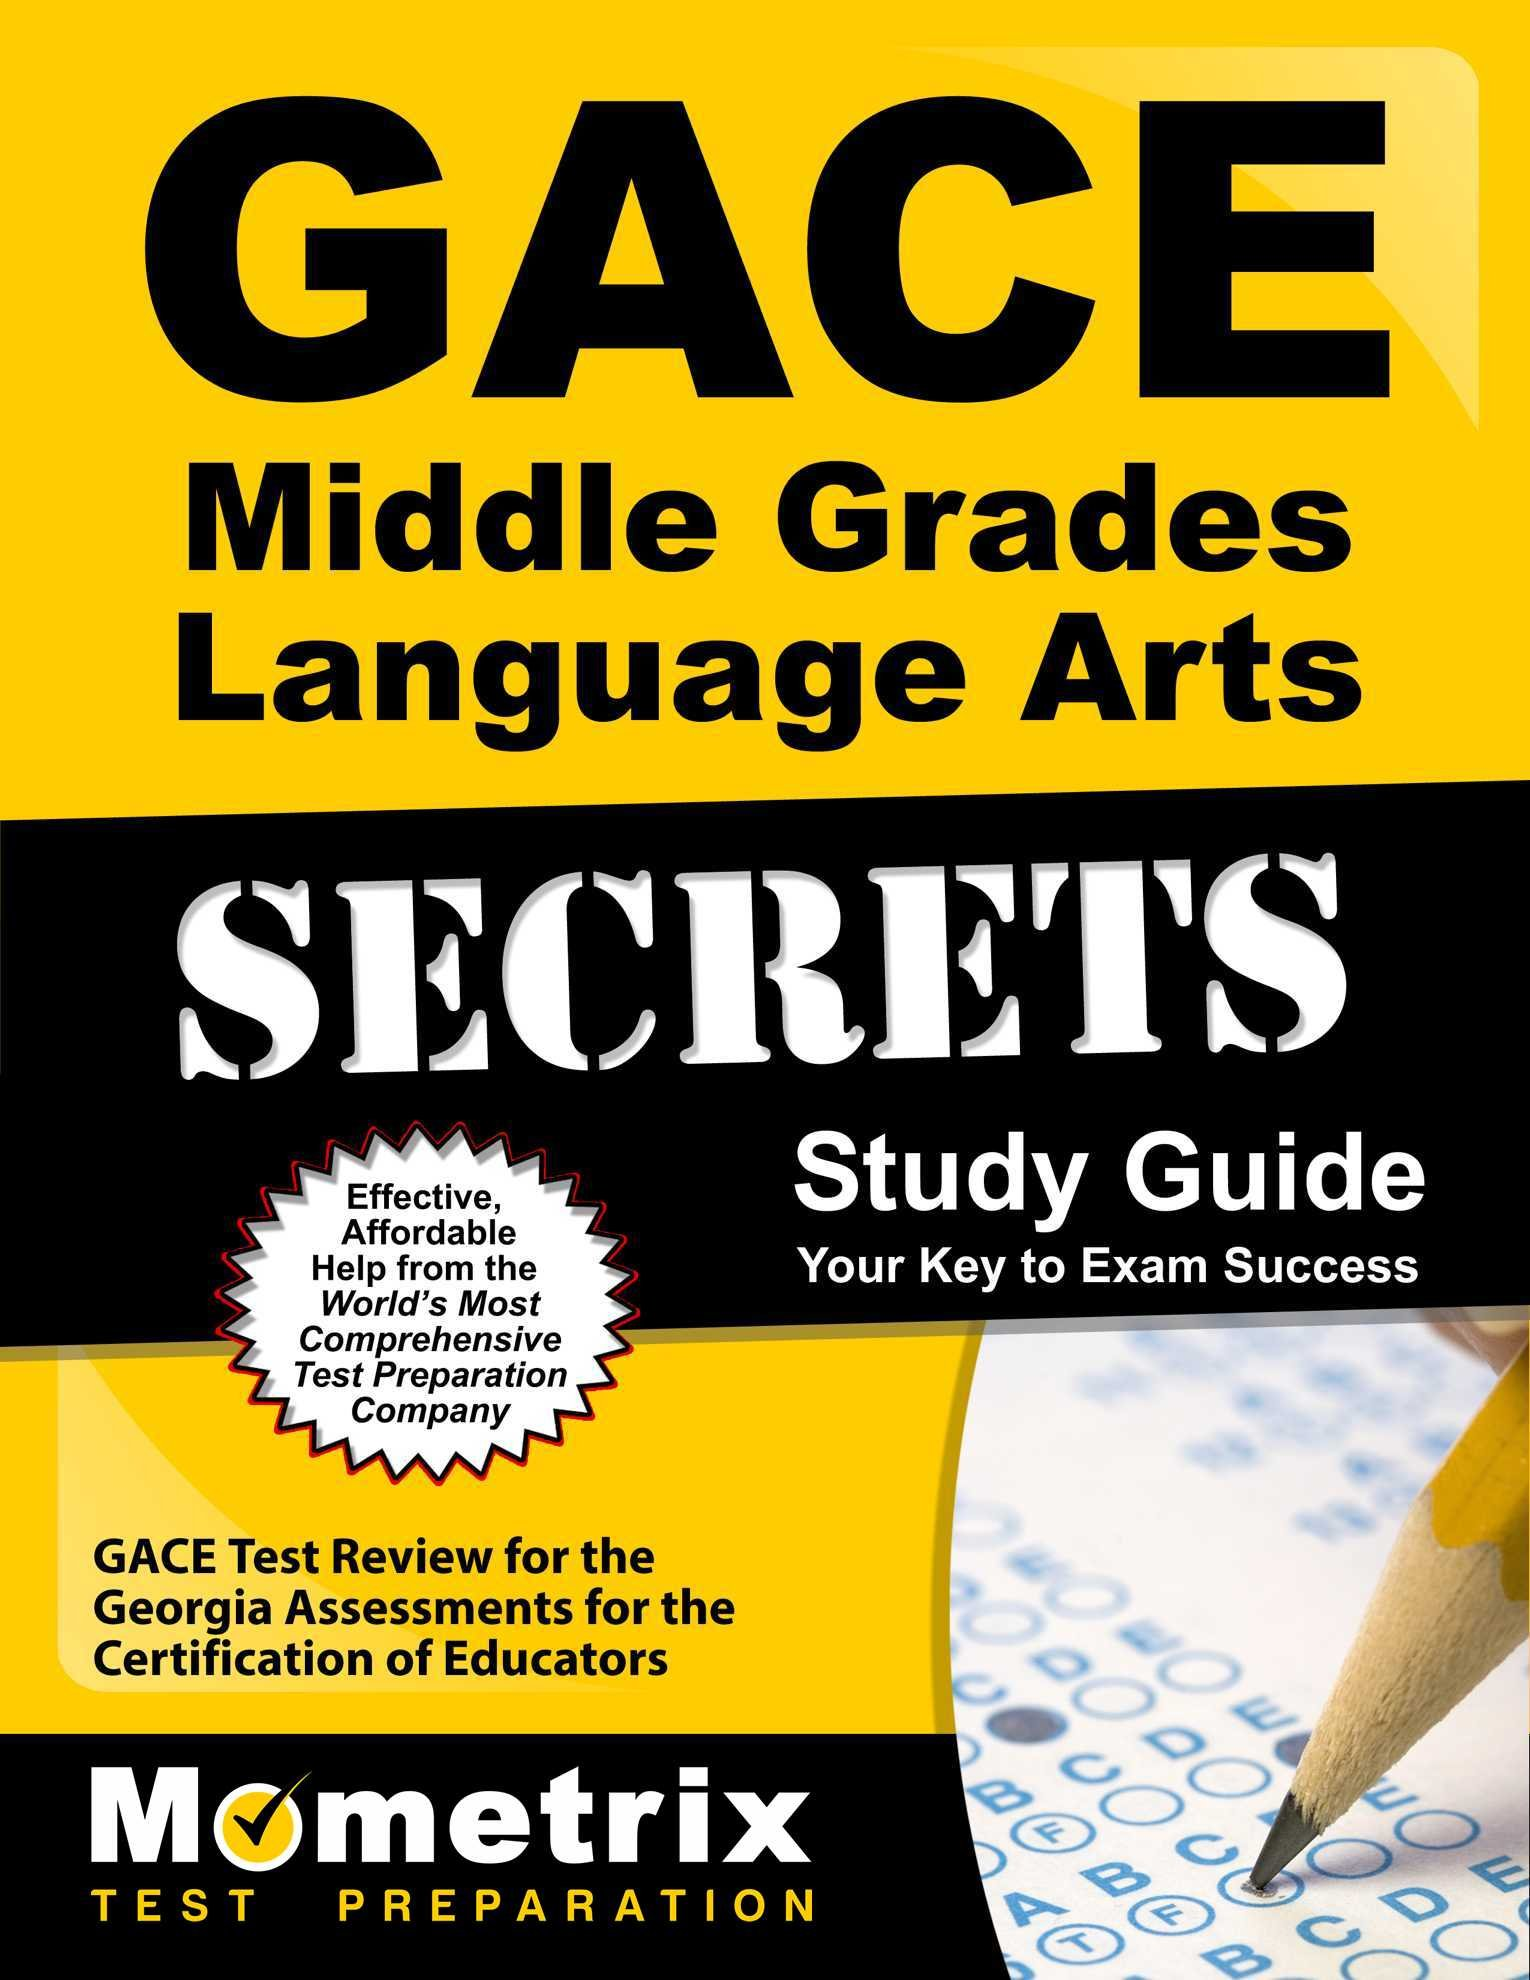 GACE Middle Grades Language Arts Secrets Study Guide: GACE Test Review for the Georgia Assessments for the Certification of Educators by Mometrix Media LLC